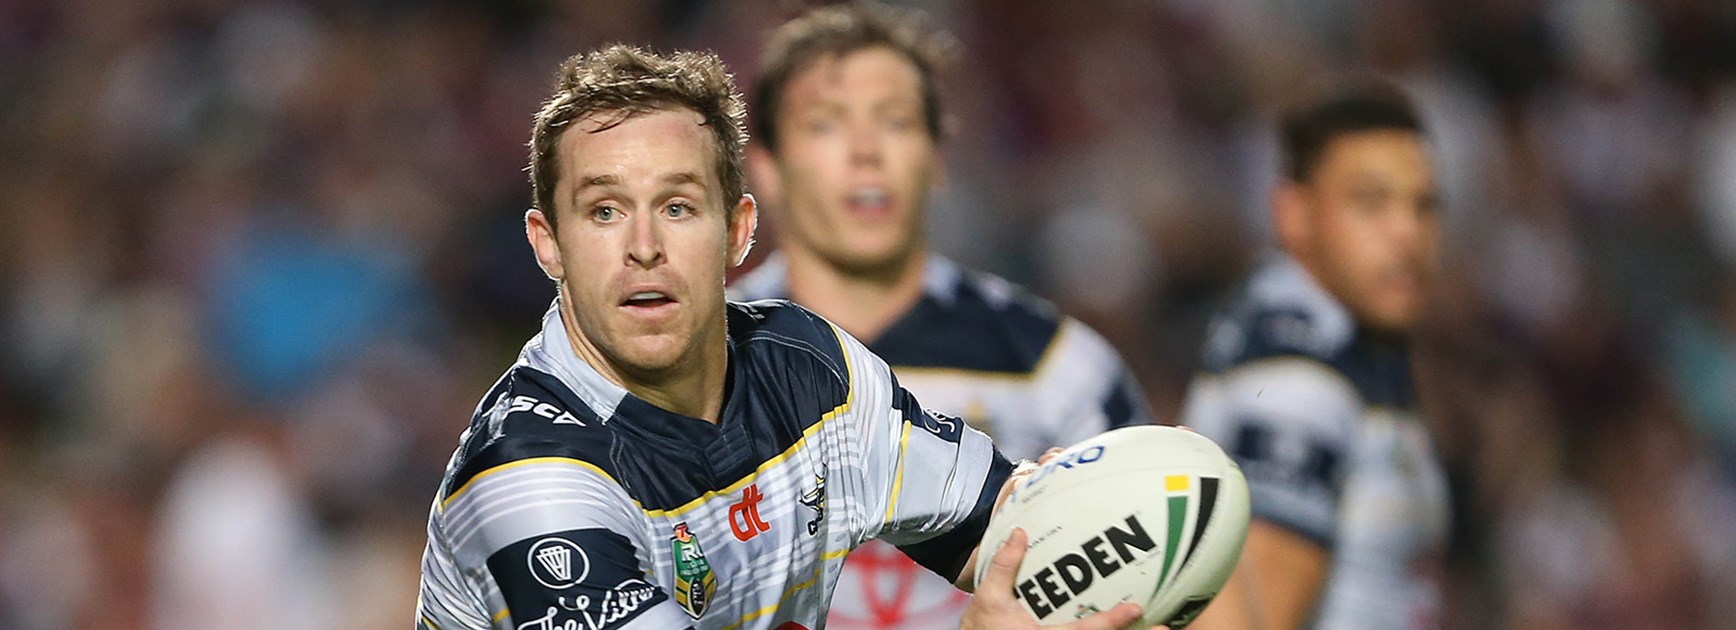 Cowboys five-eighth Michael Morgan starred against Manly in Round 9 of the Telstra Premiership.